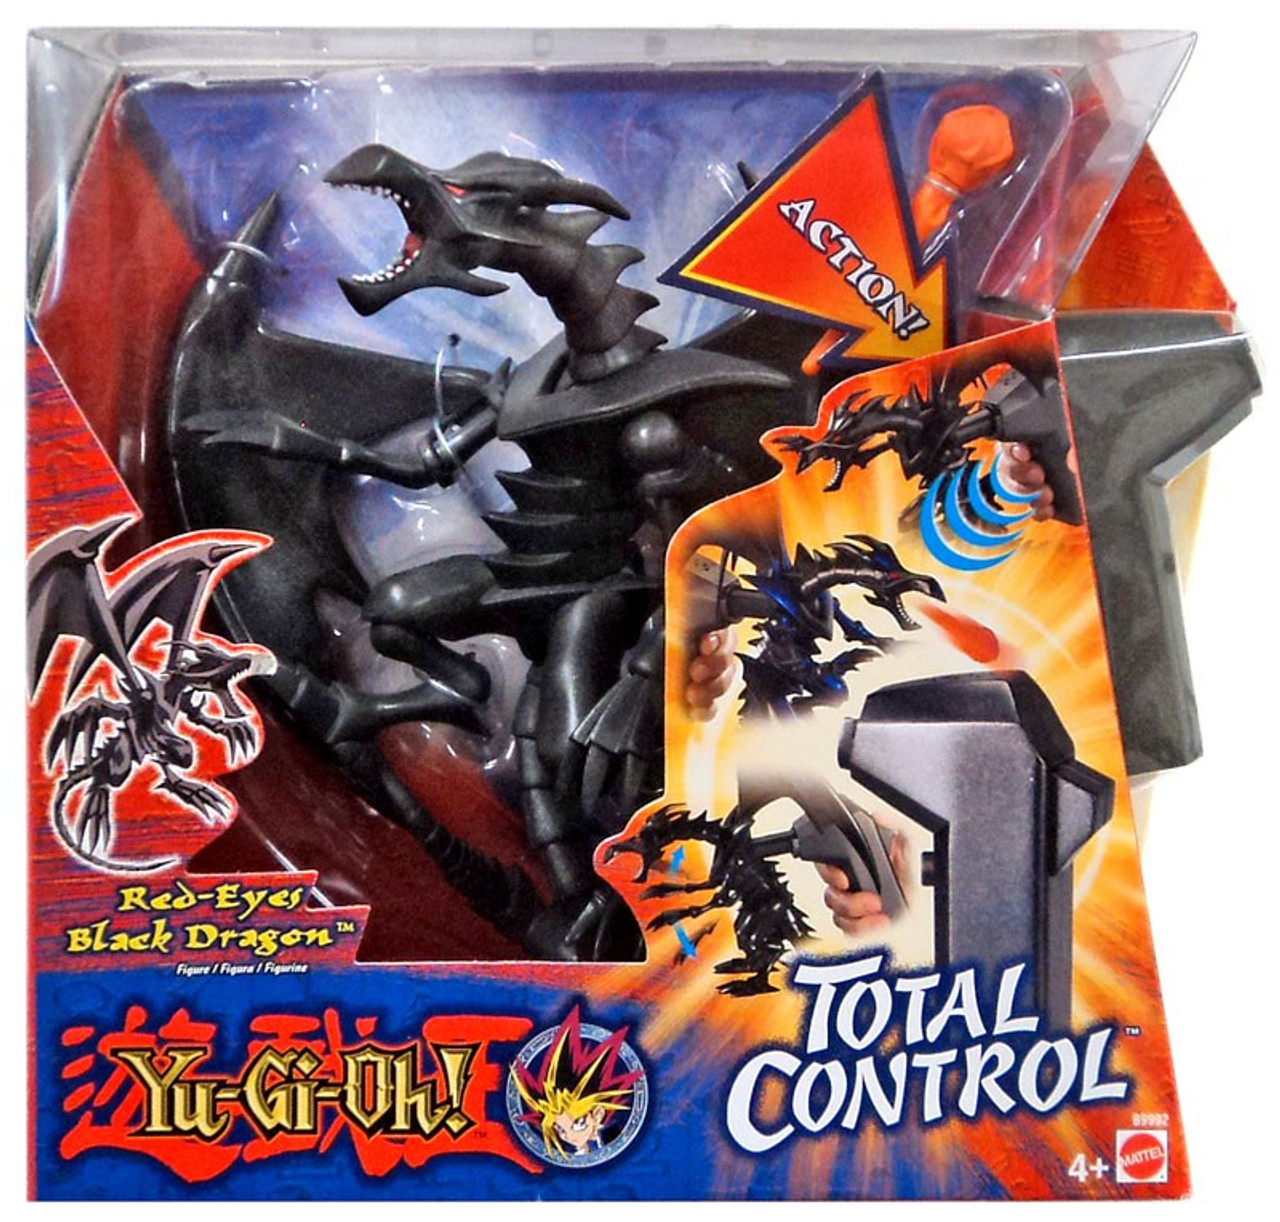 YuGiOh Total Control Red-Eyes Black Dragon 7 Action Figure